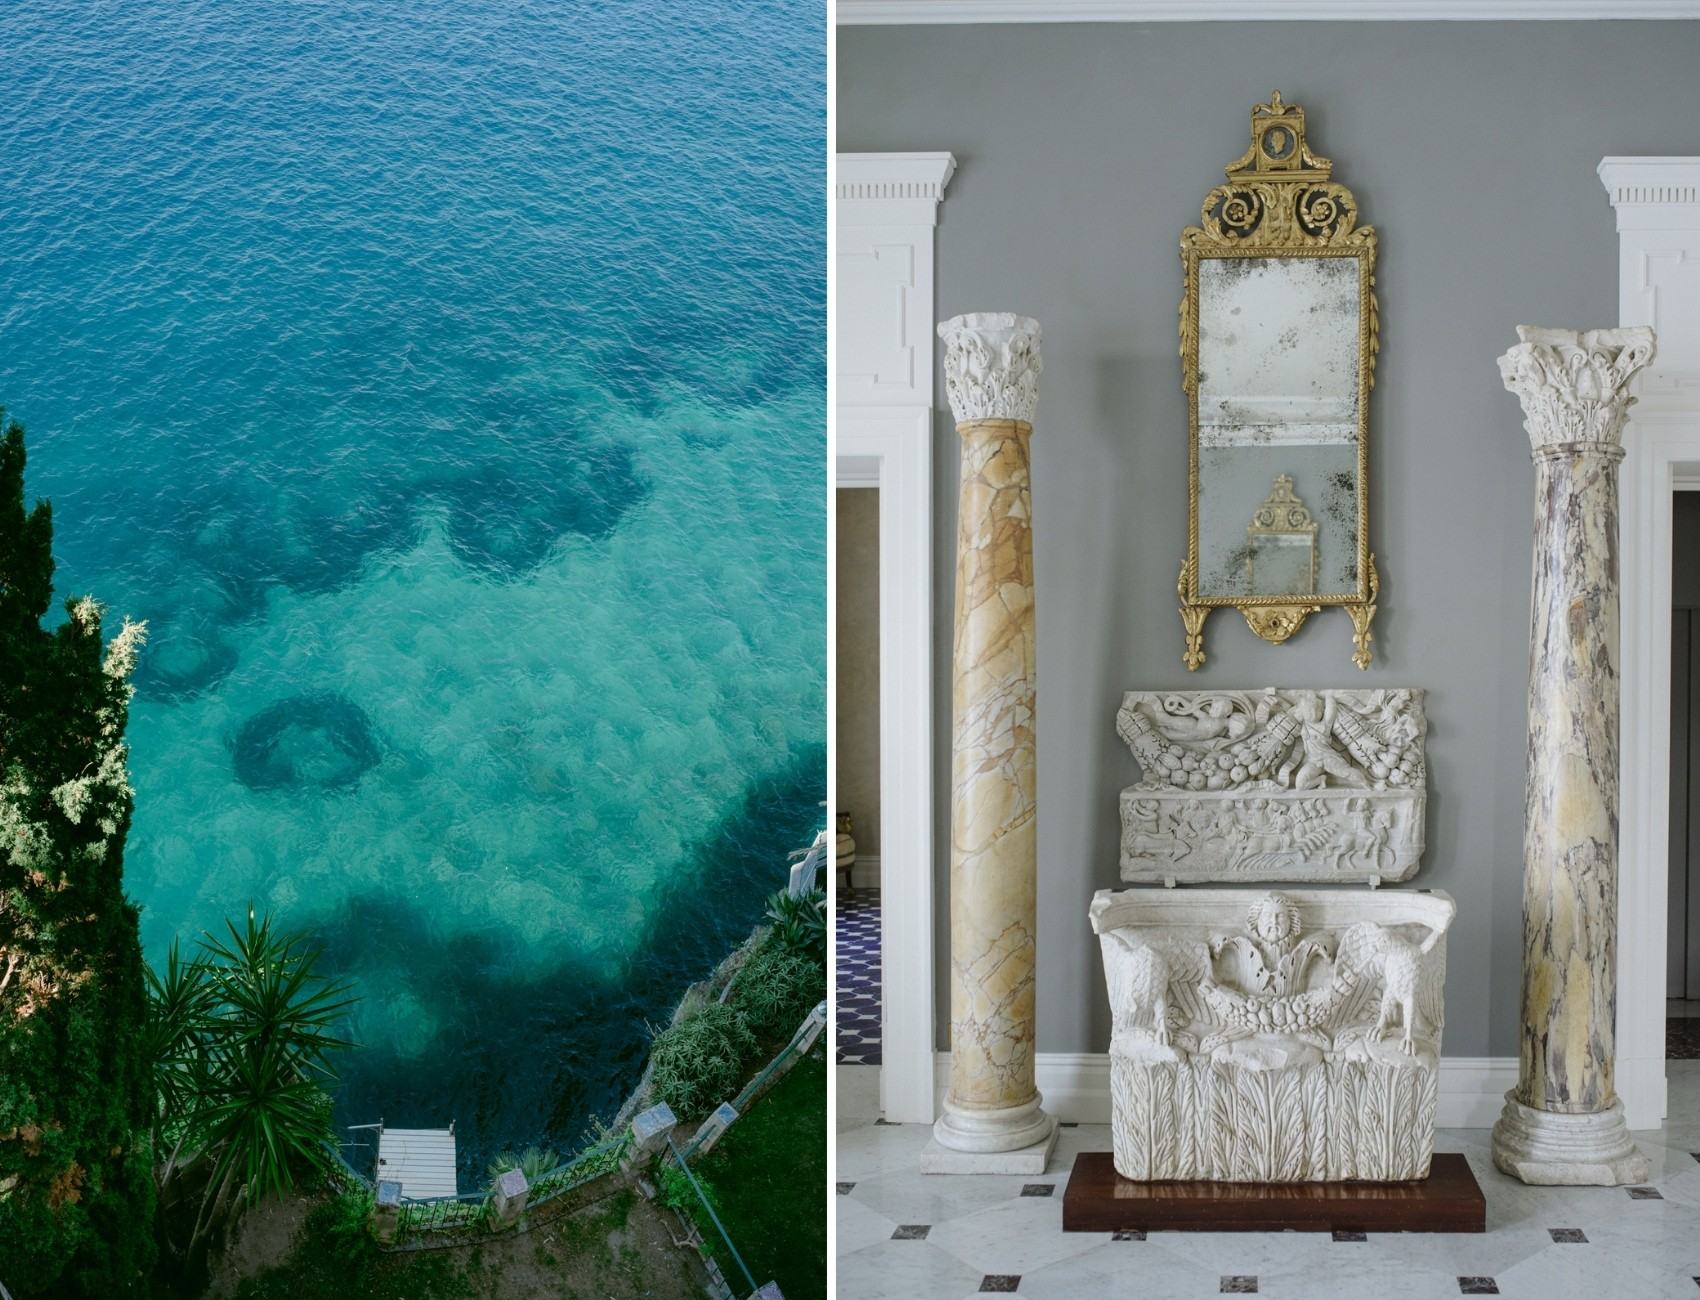 Villa Astor luxury wedding venue in Italy, Sorrento with luxury interiors